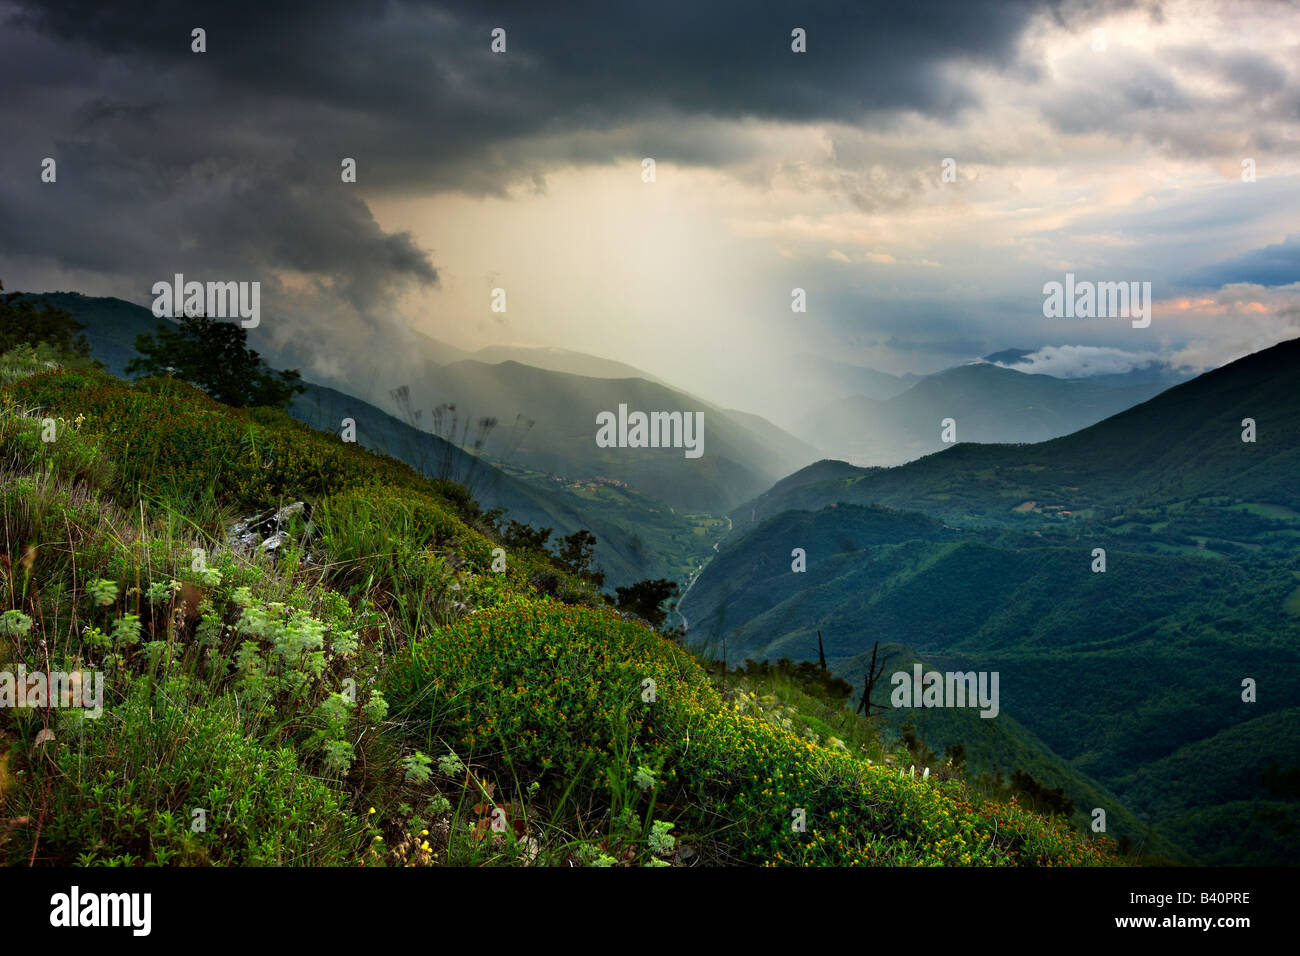 a spring storm in the Valnerina near Meggiano, Umbria, Italy - Stock Image